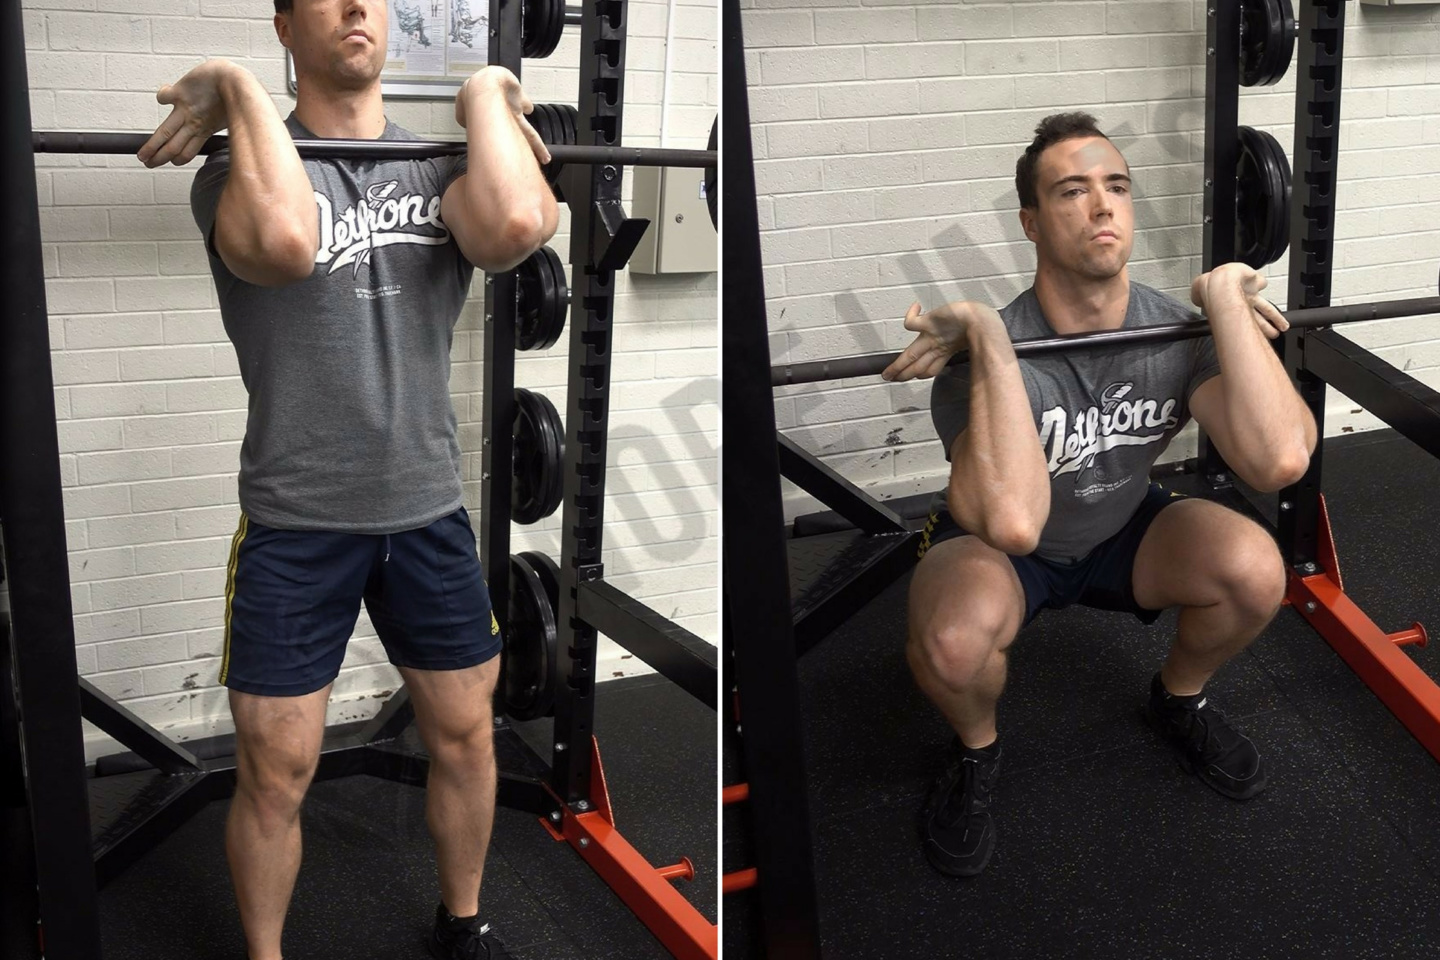 d4ed59006978 6 Front Squat Benefits Most People Don t Know - Ignore Limits